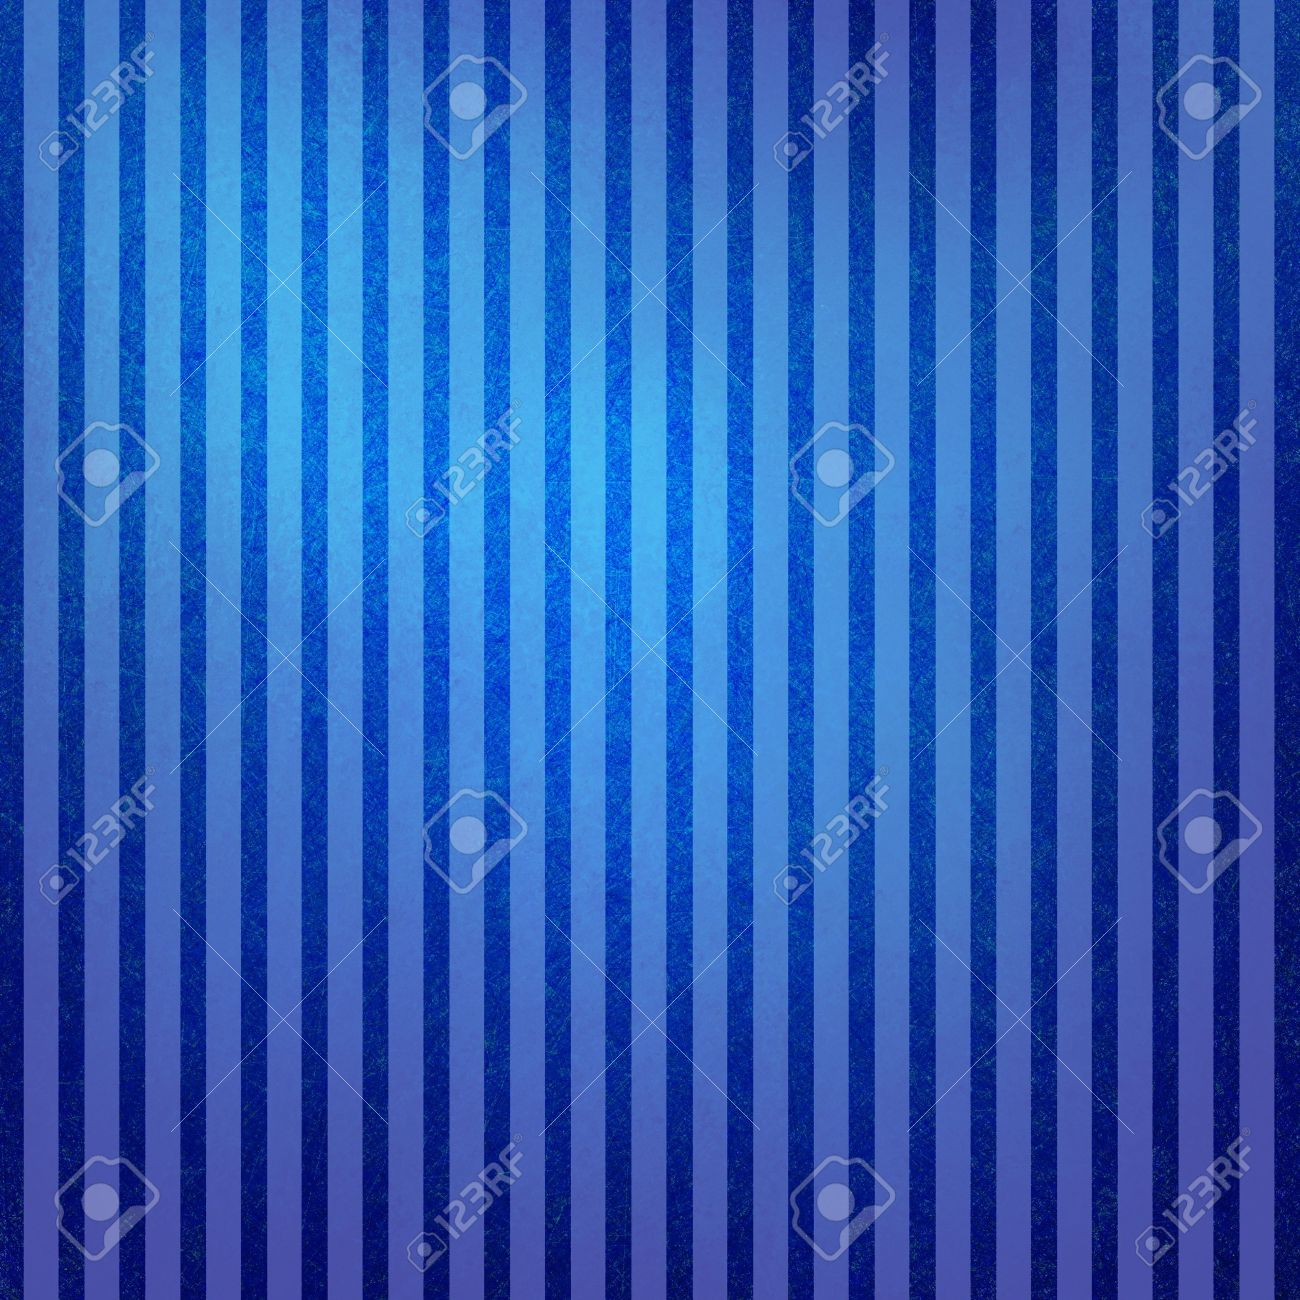 web page background color stock photo abstract blue background dark light contrast blue color background striped